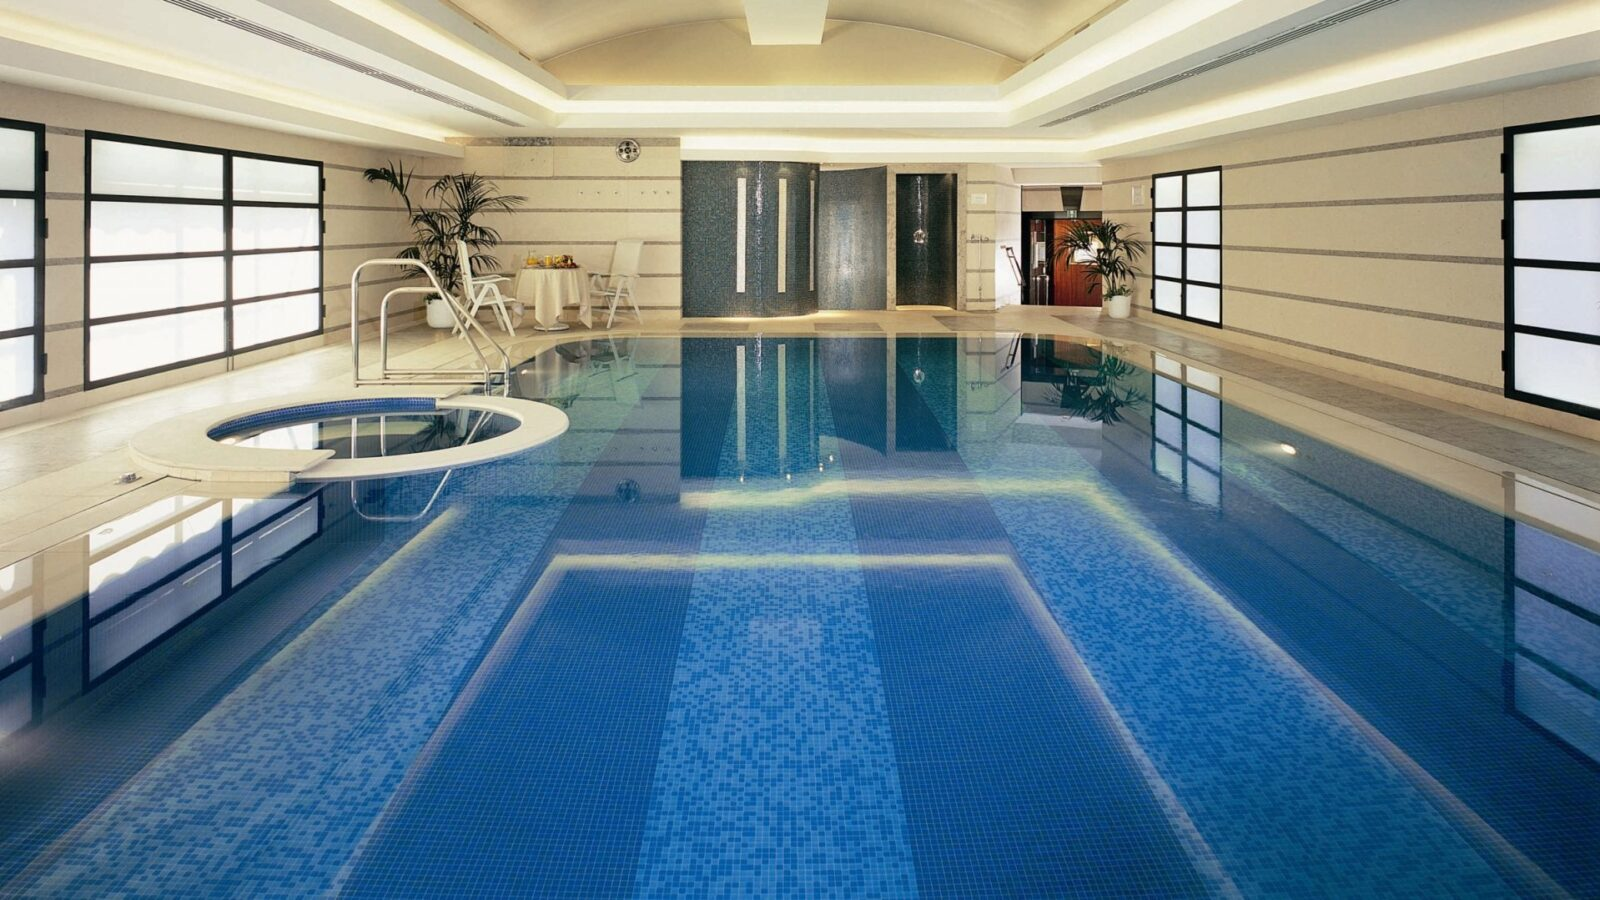 Hotel Principe di Savoia - Club 10 fitness & beauty centre